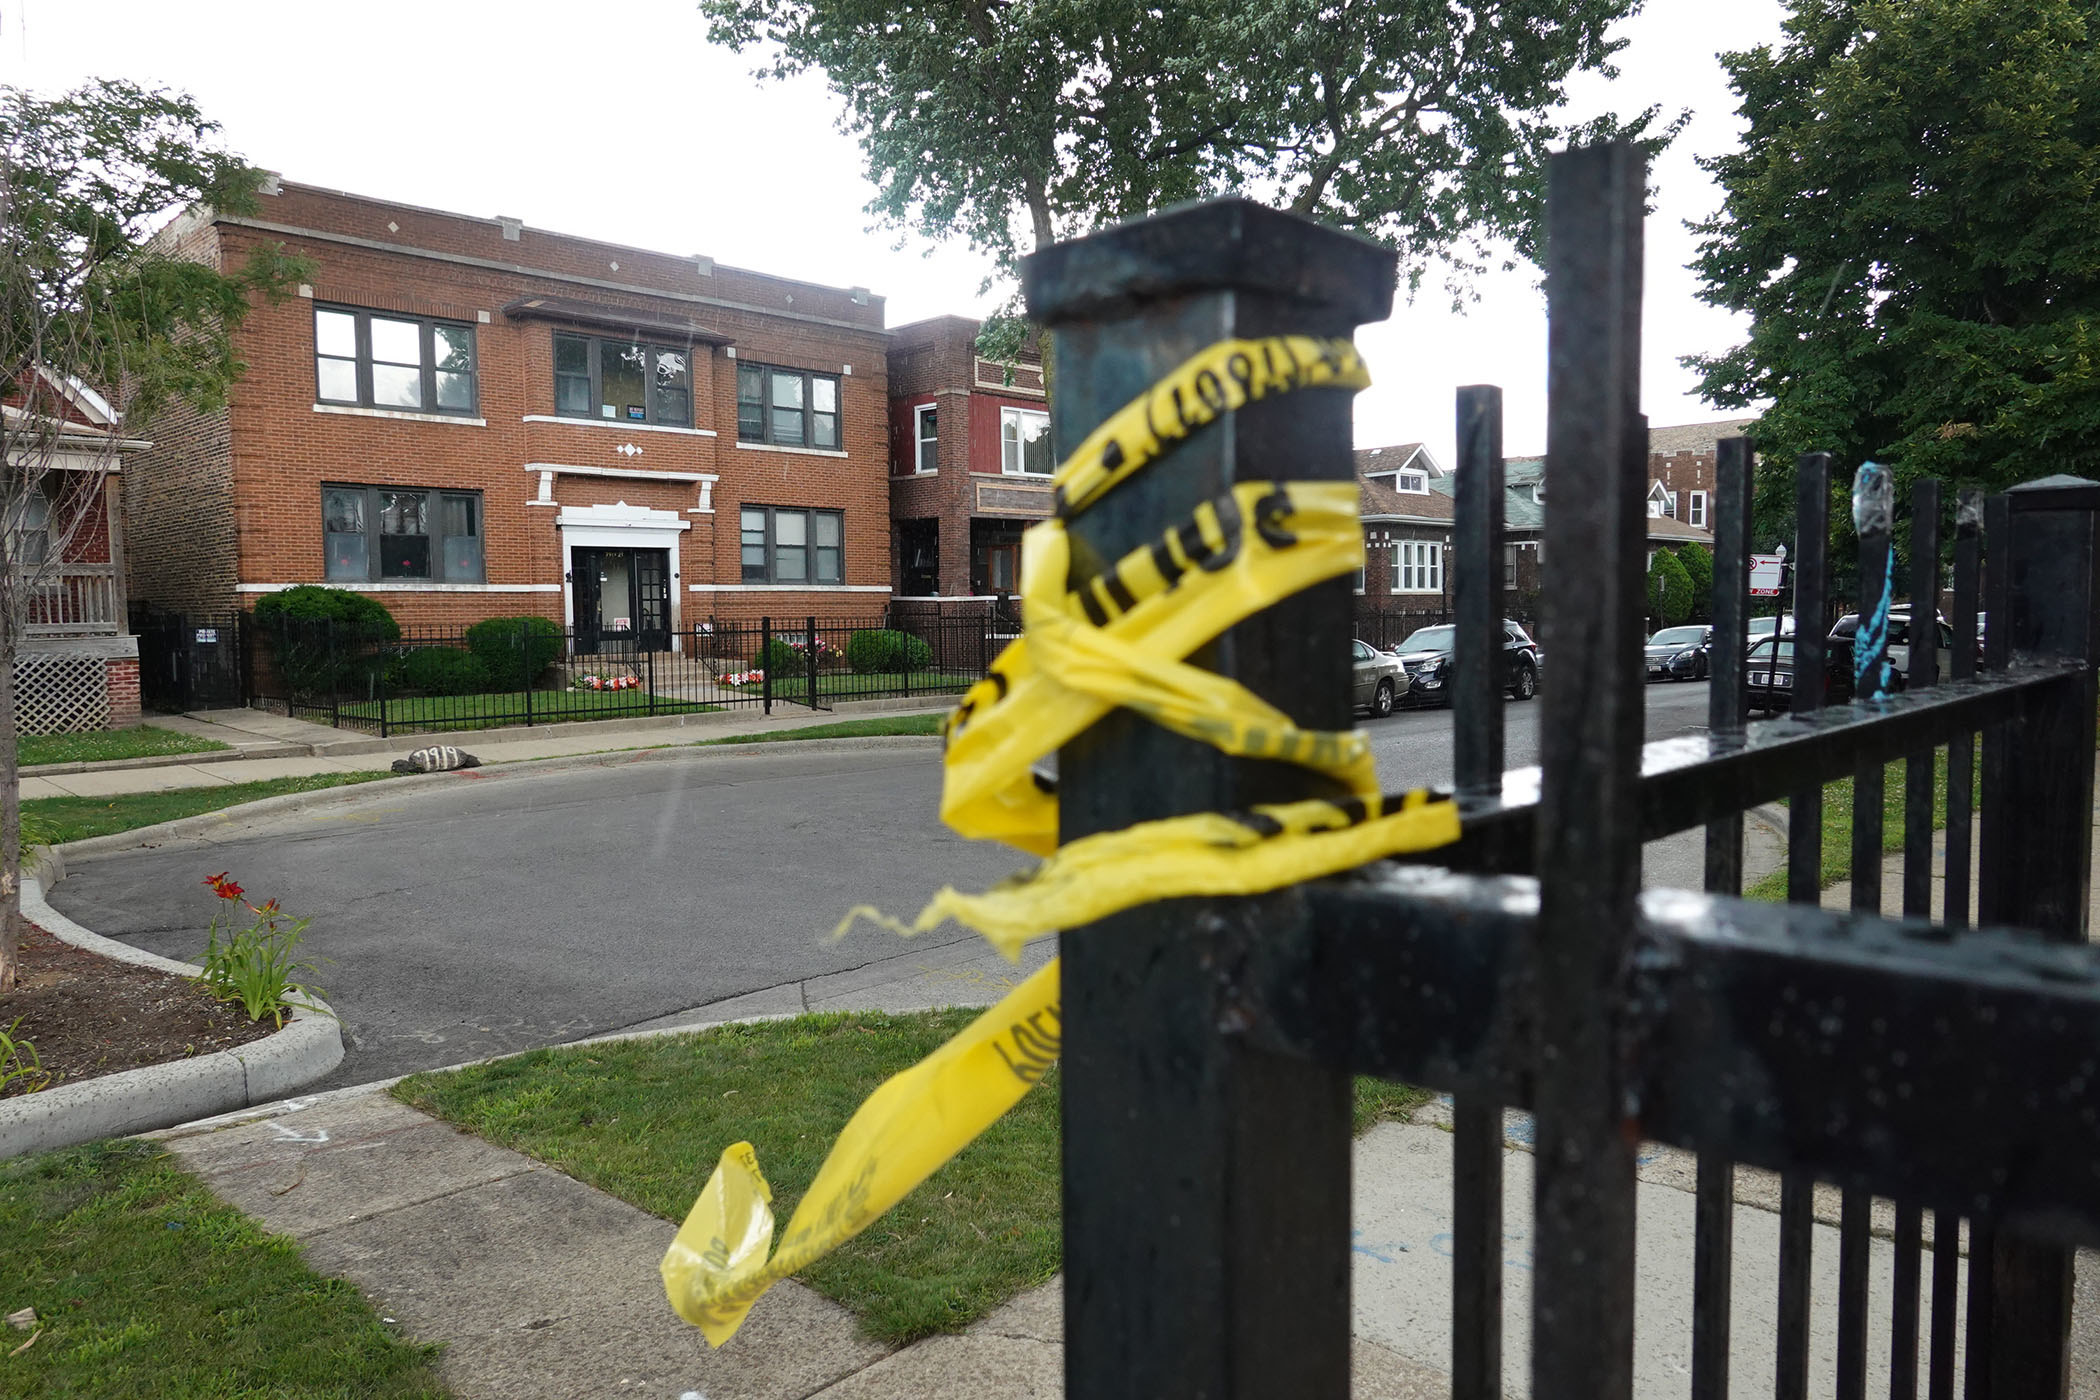 Yellow caution tape is wrapped around an iron fence; in the background, an empty street and brick buildings